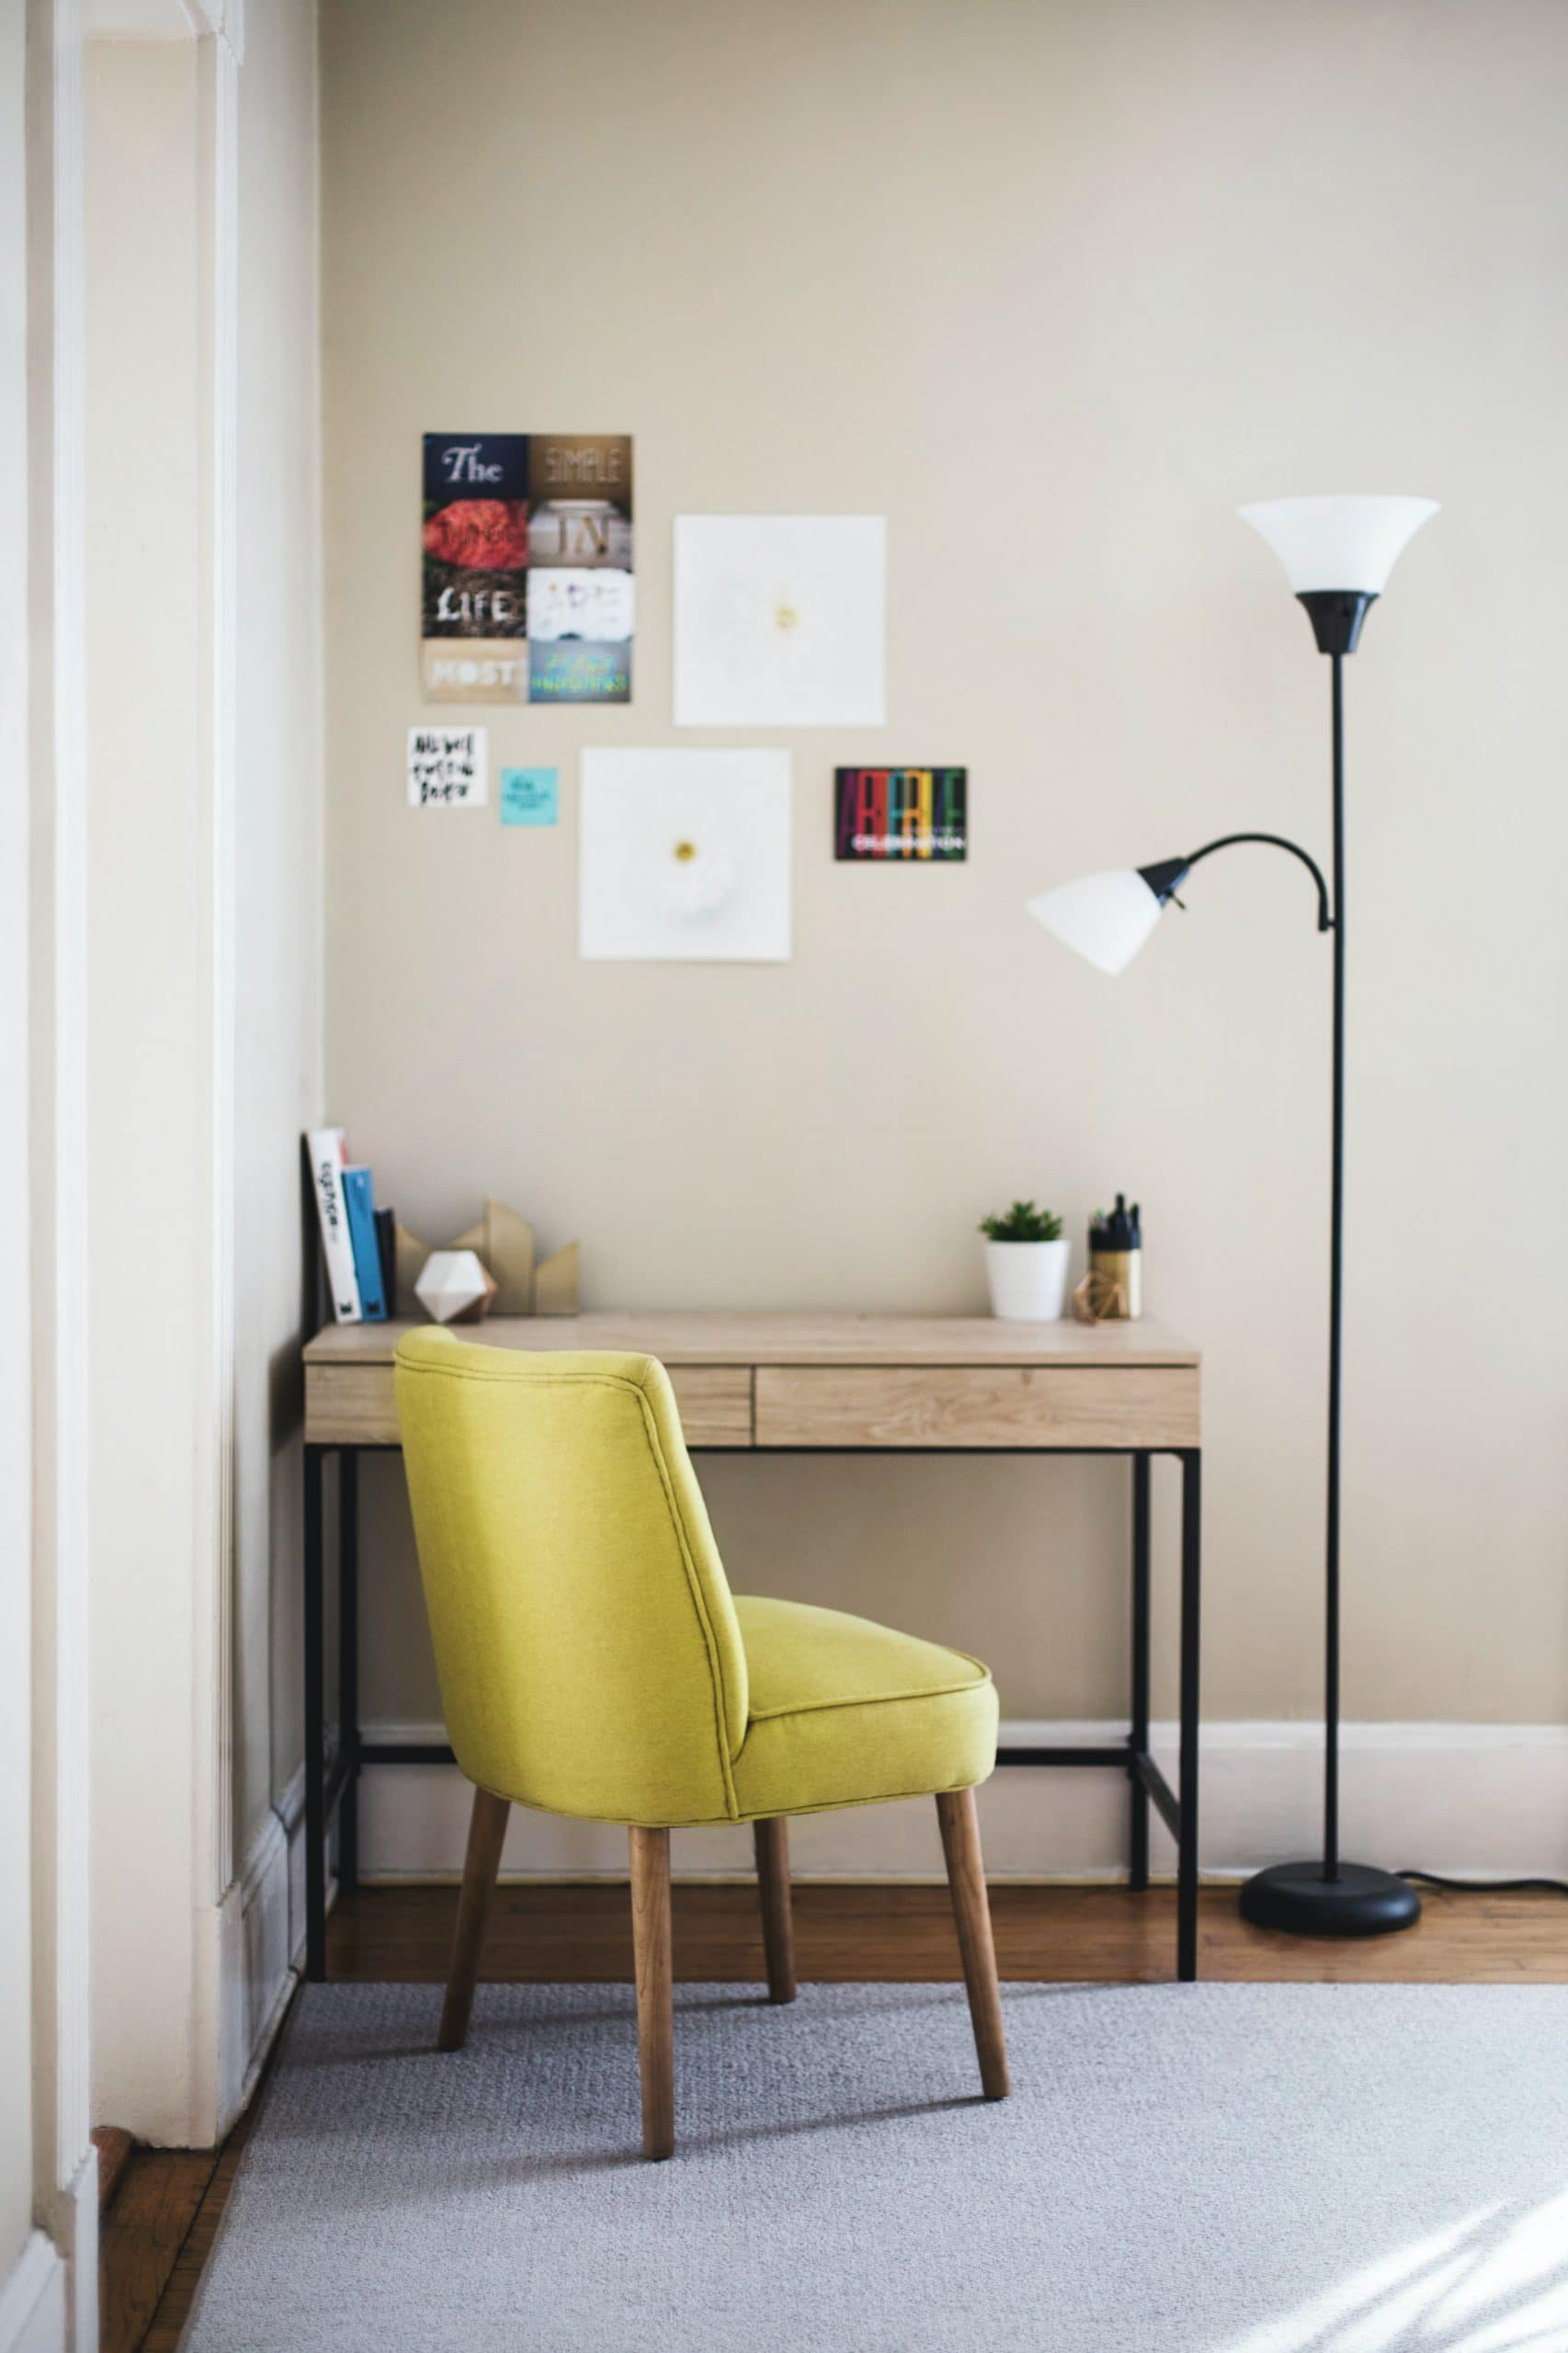 How to prepare a professional video resume - An image is a household desk